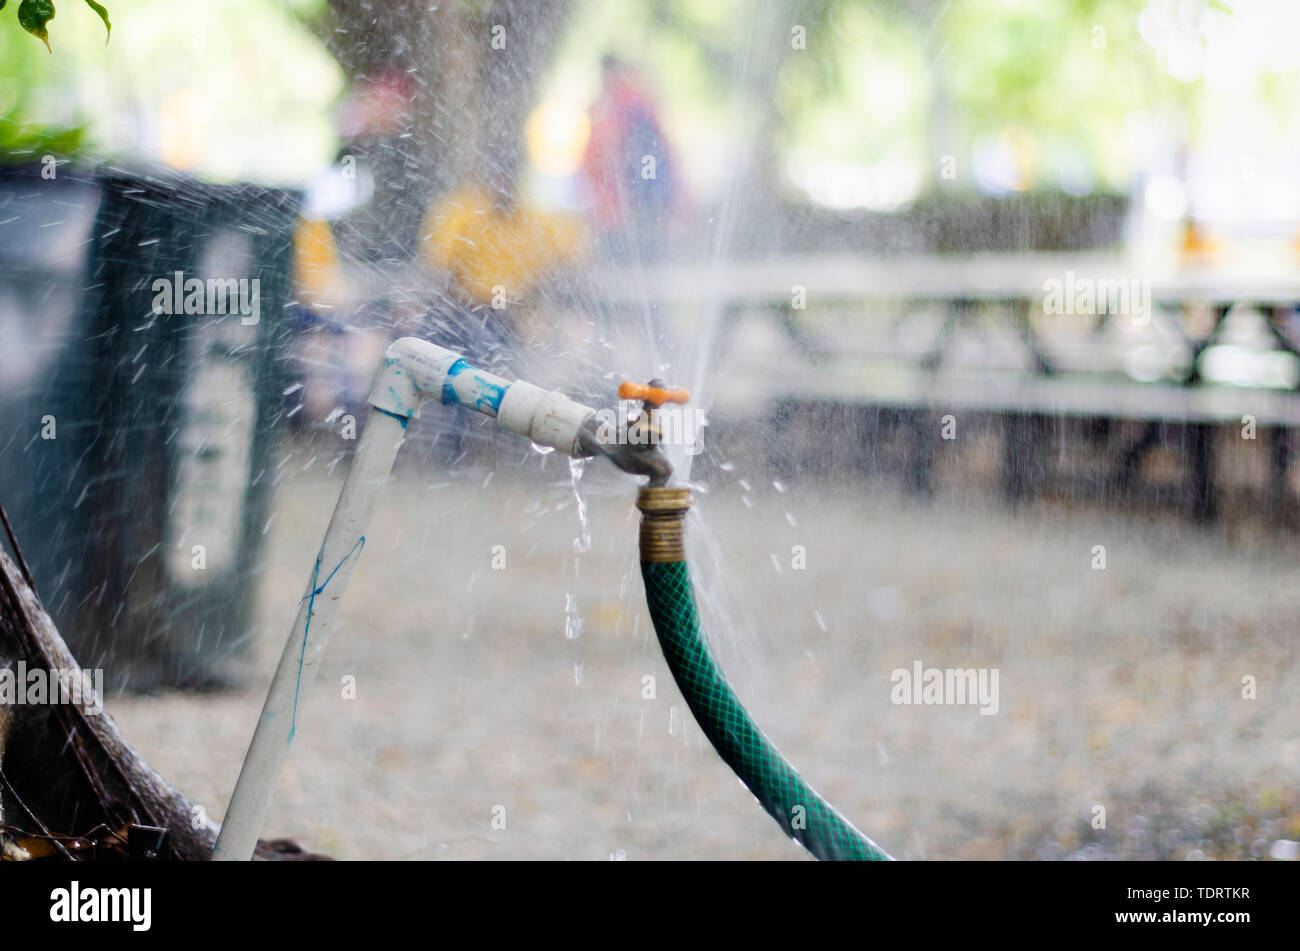 garden faucet wasting water by cooling the yard connected with a green irrigation hose - Stock Image